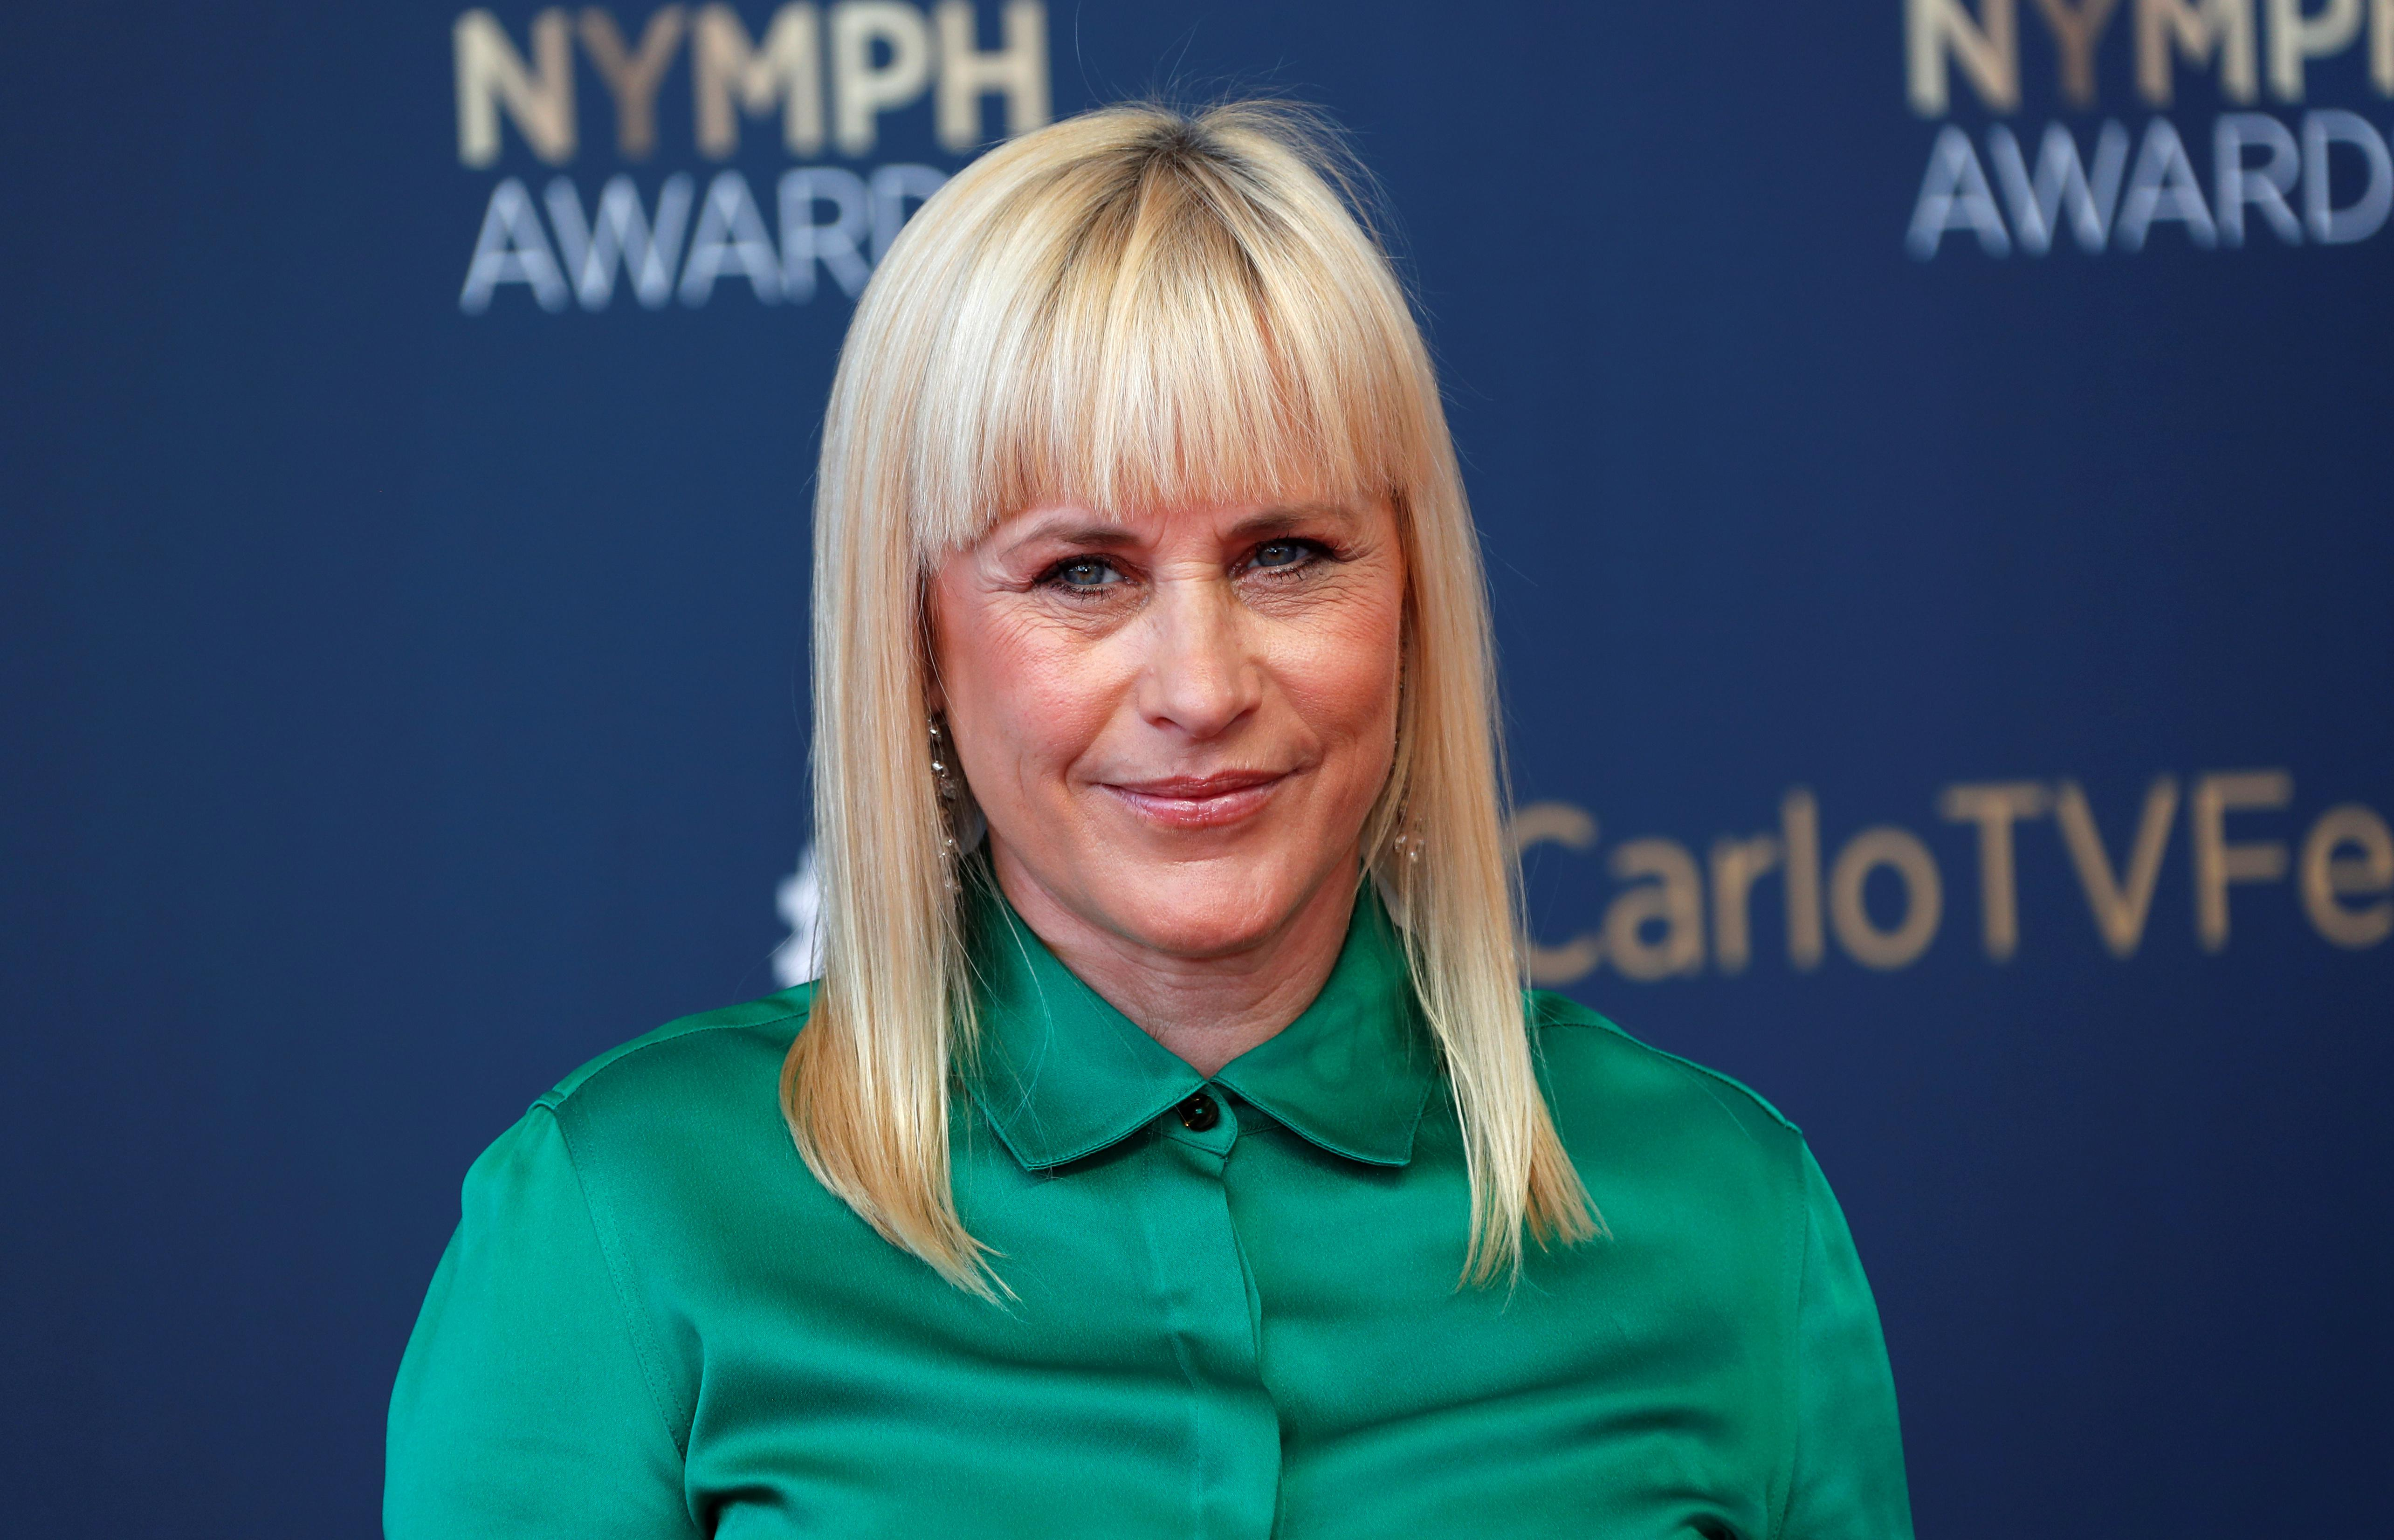 Patricia Arquette on Hollywood's sexist double standard for aging women: 'Nobody minds if Jack Nicholson has a potbelly in a movie'